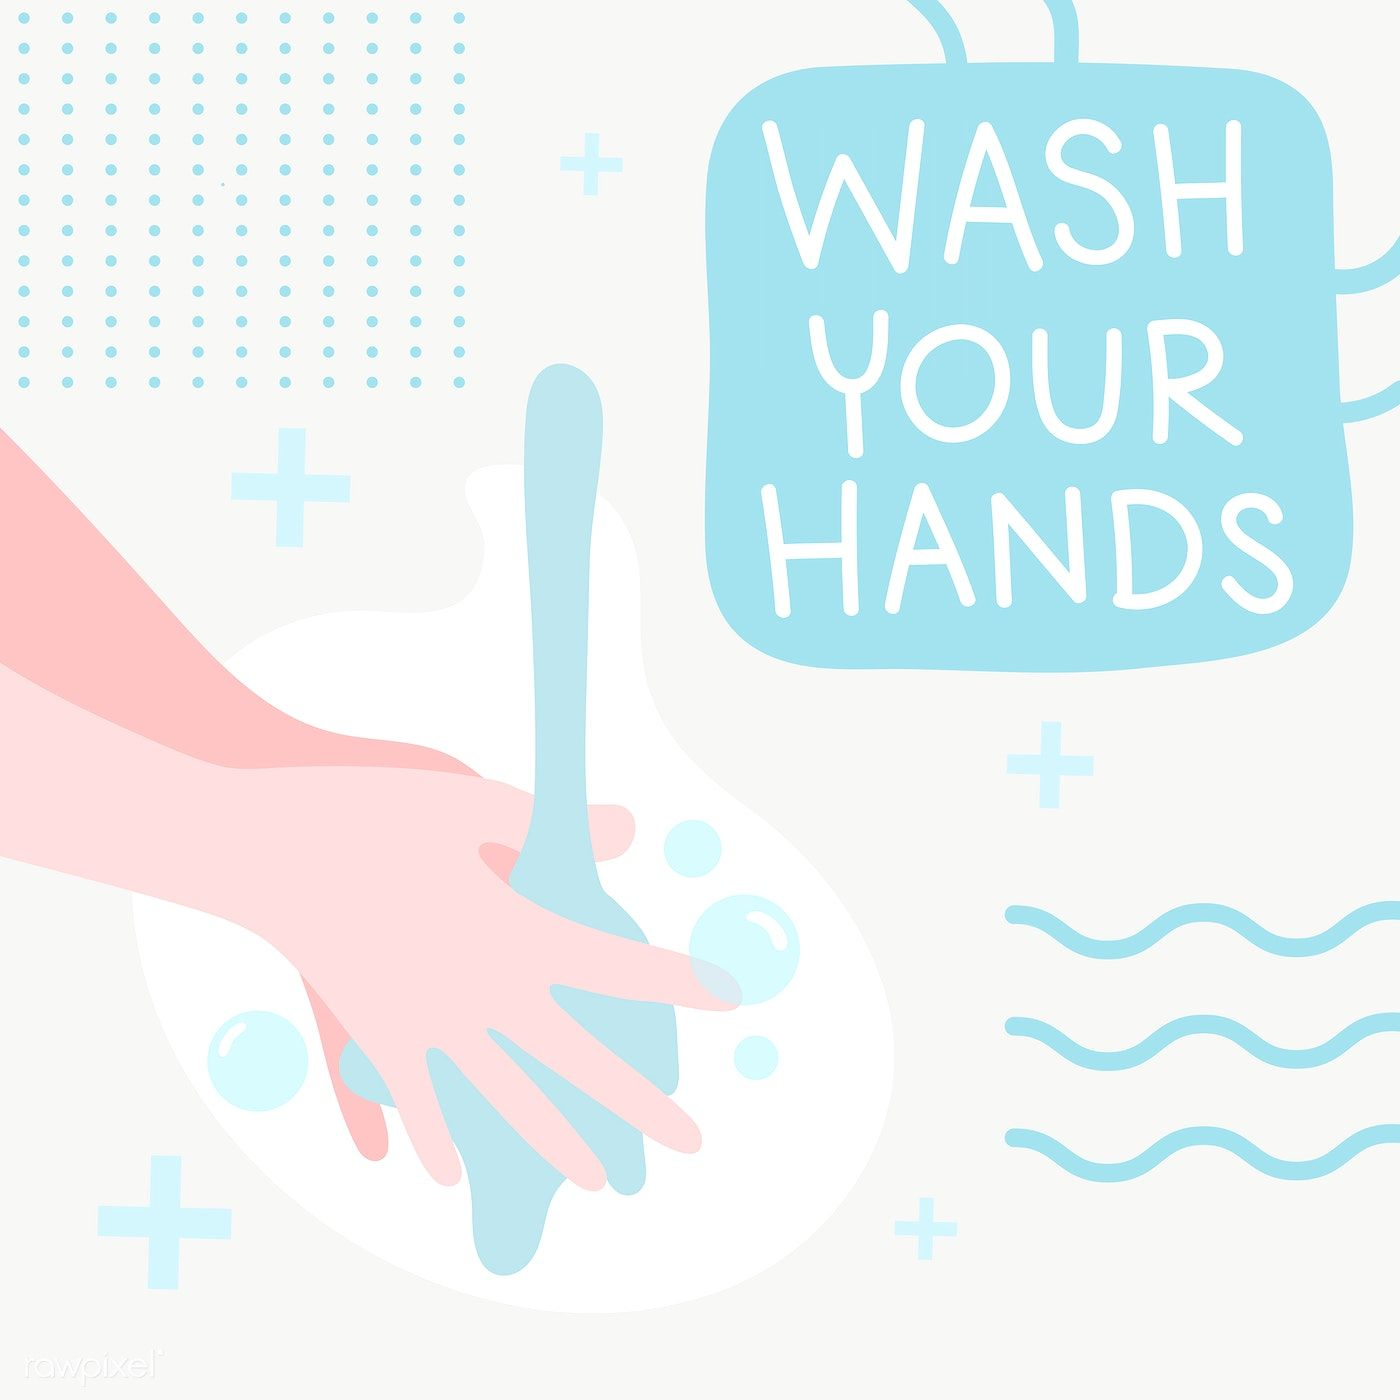 Wash Your Hands Sanitary Message Transparent Png Free Image By Rawpixel Com Techi Wash Your Hands Banner Template Water Illustration